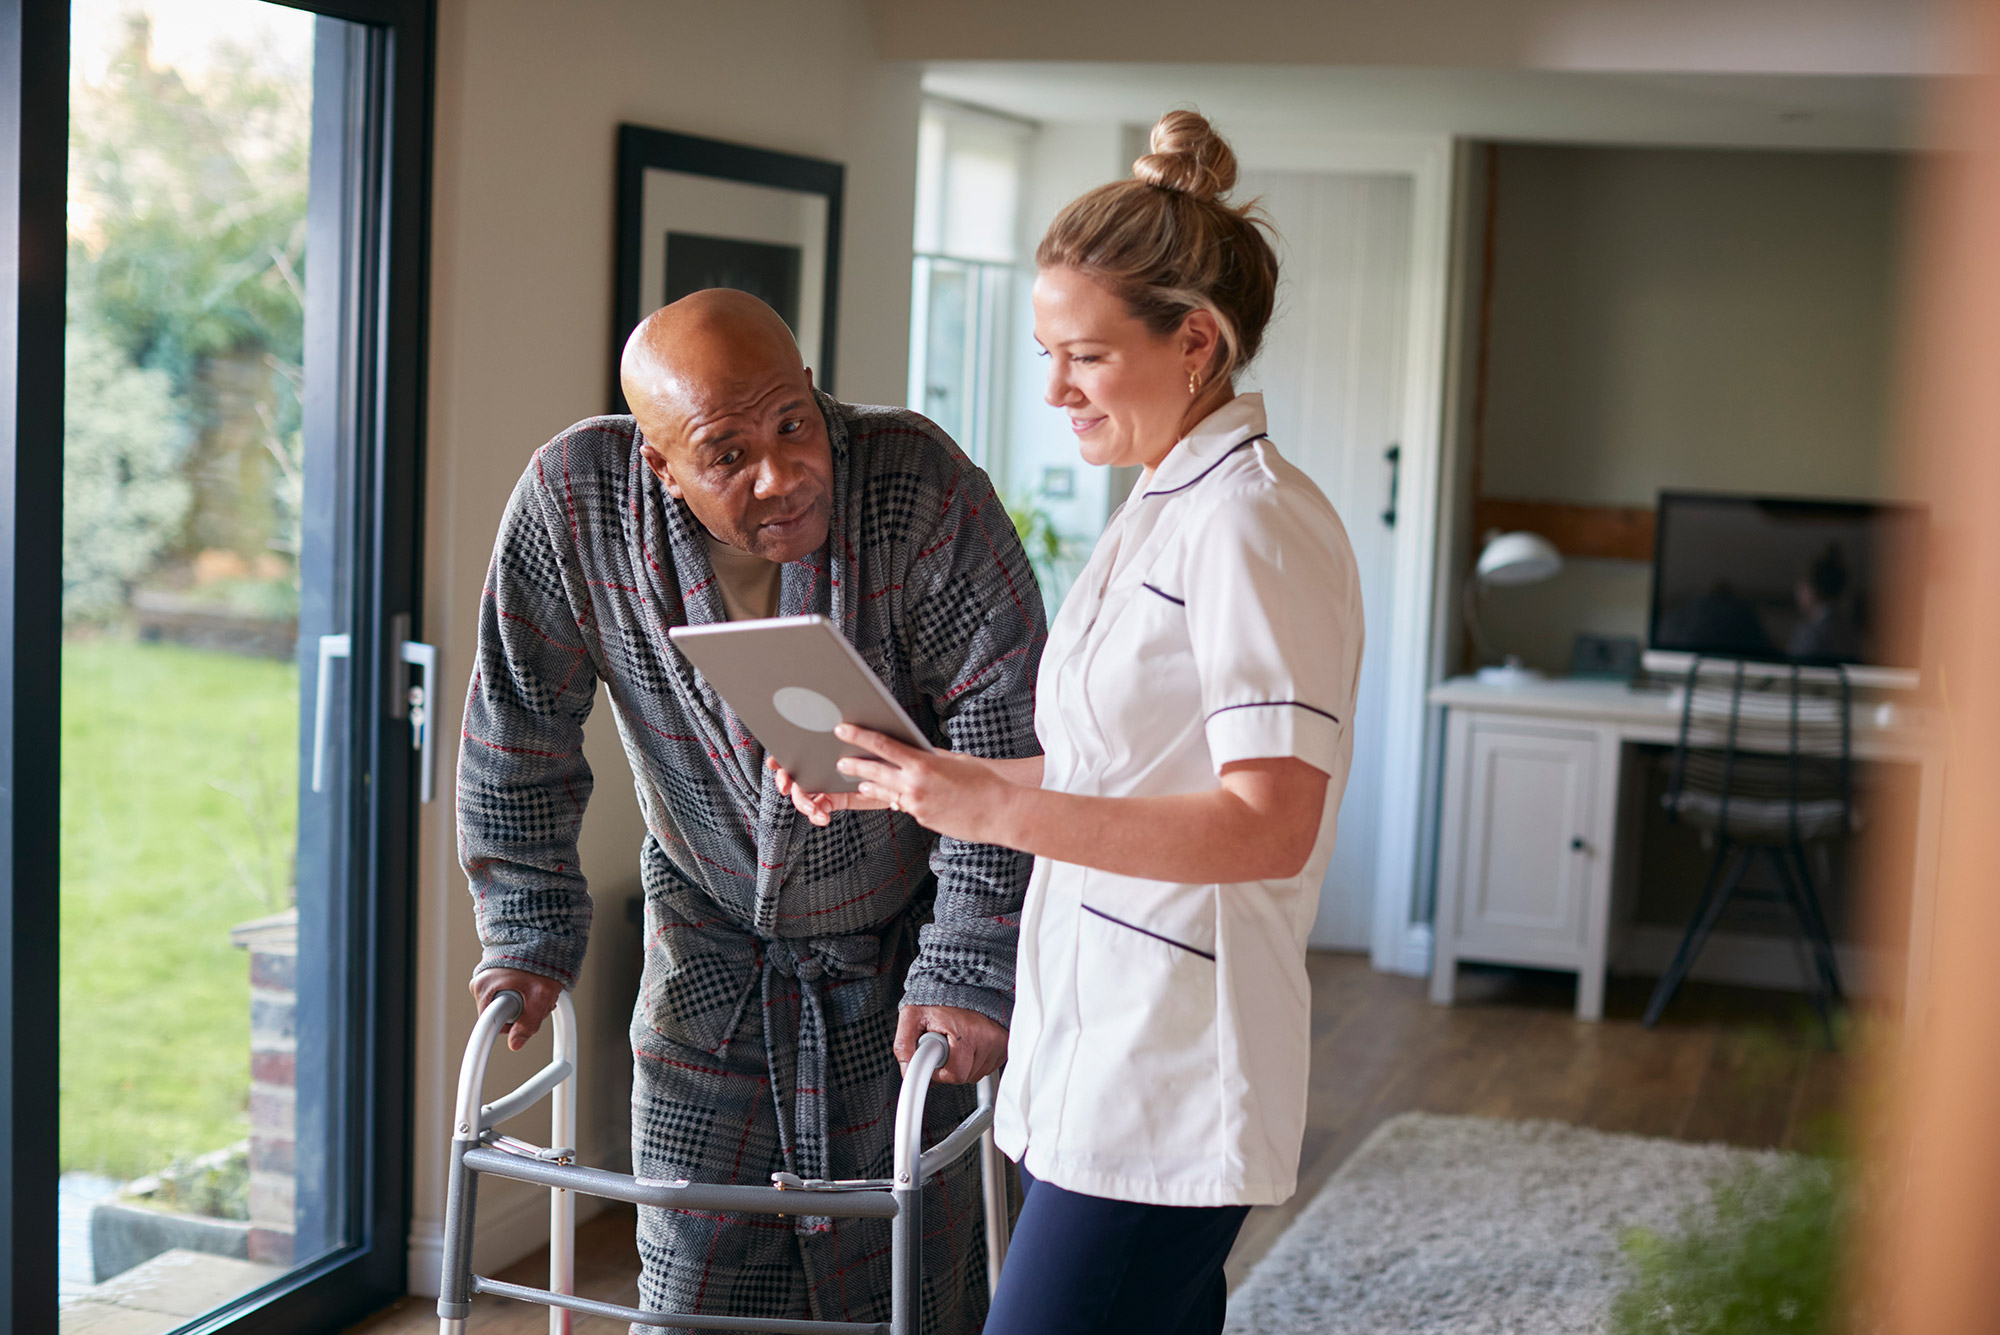 Is technology the health care solution for the elderly?